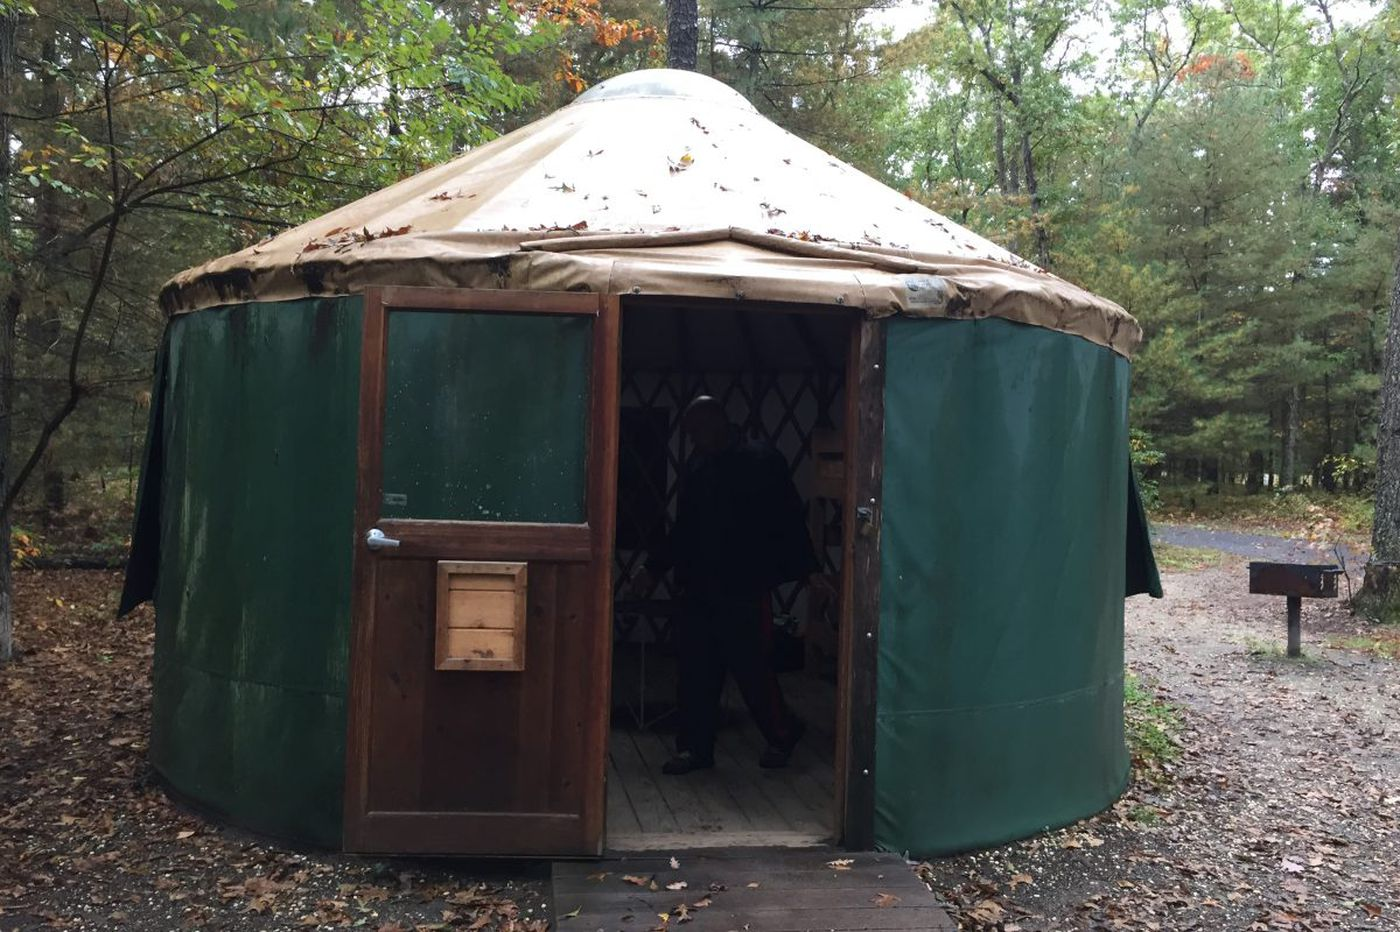 New Jersey state parks' quirky yurts are going away